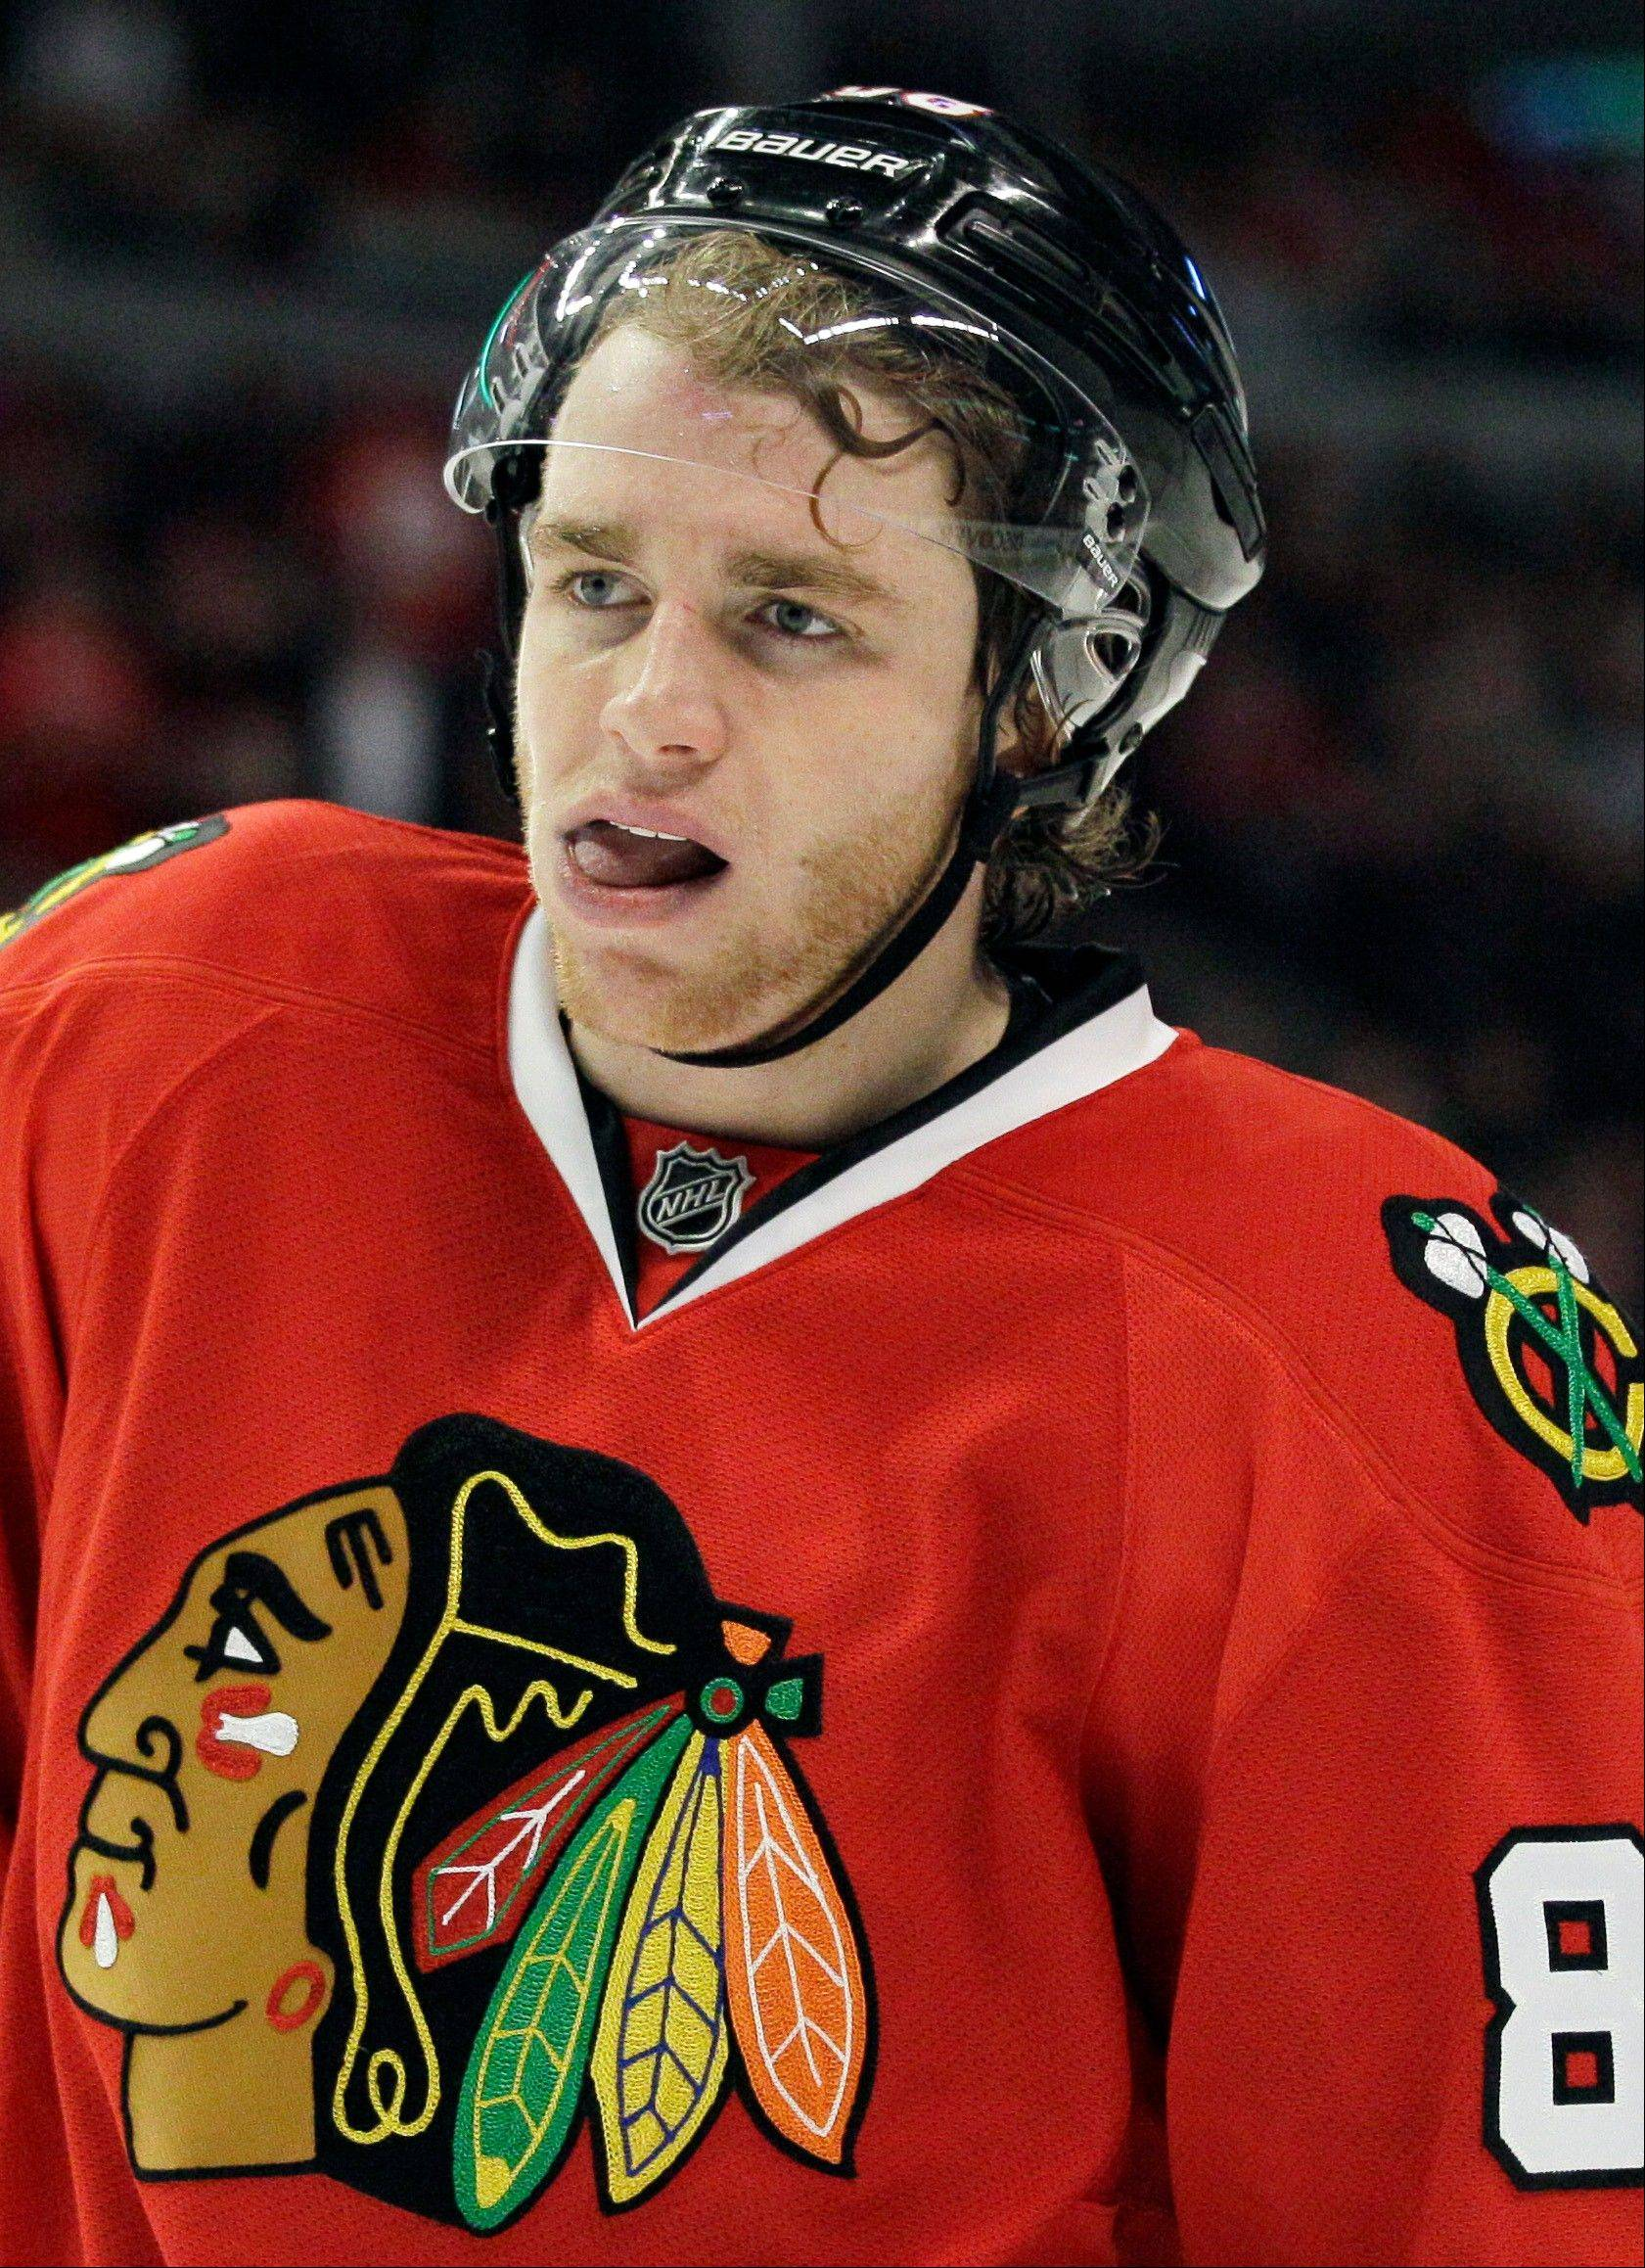 Associated Press After playing in a charity game on Friday at Allstate Arena, Blackhawks forward Patrick Kane will leave this weekend to play for a club in Switzerland while the NHL lockout continues.